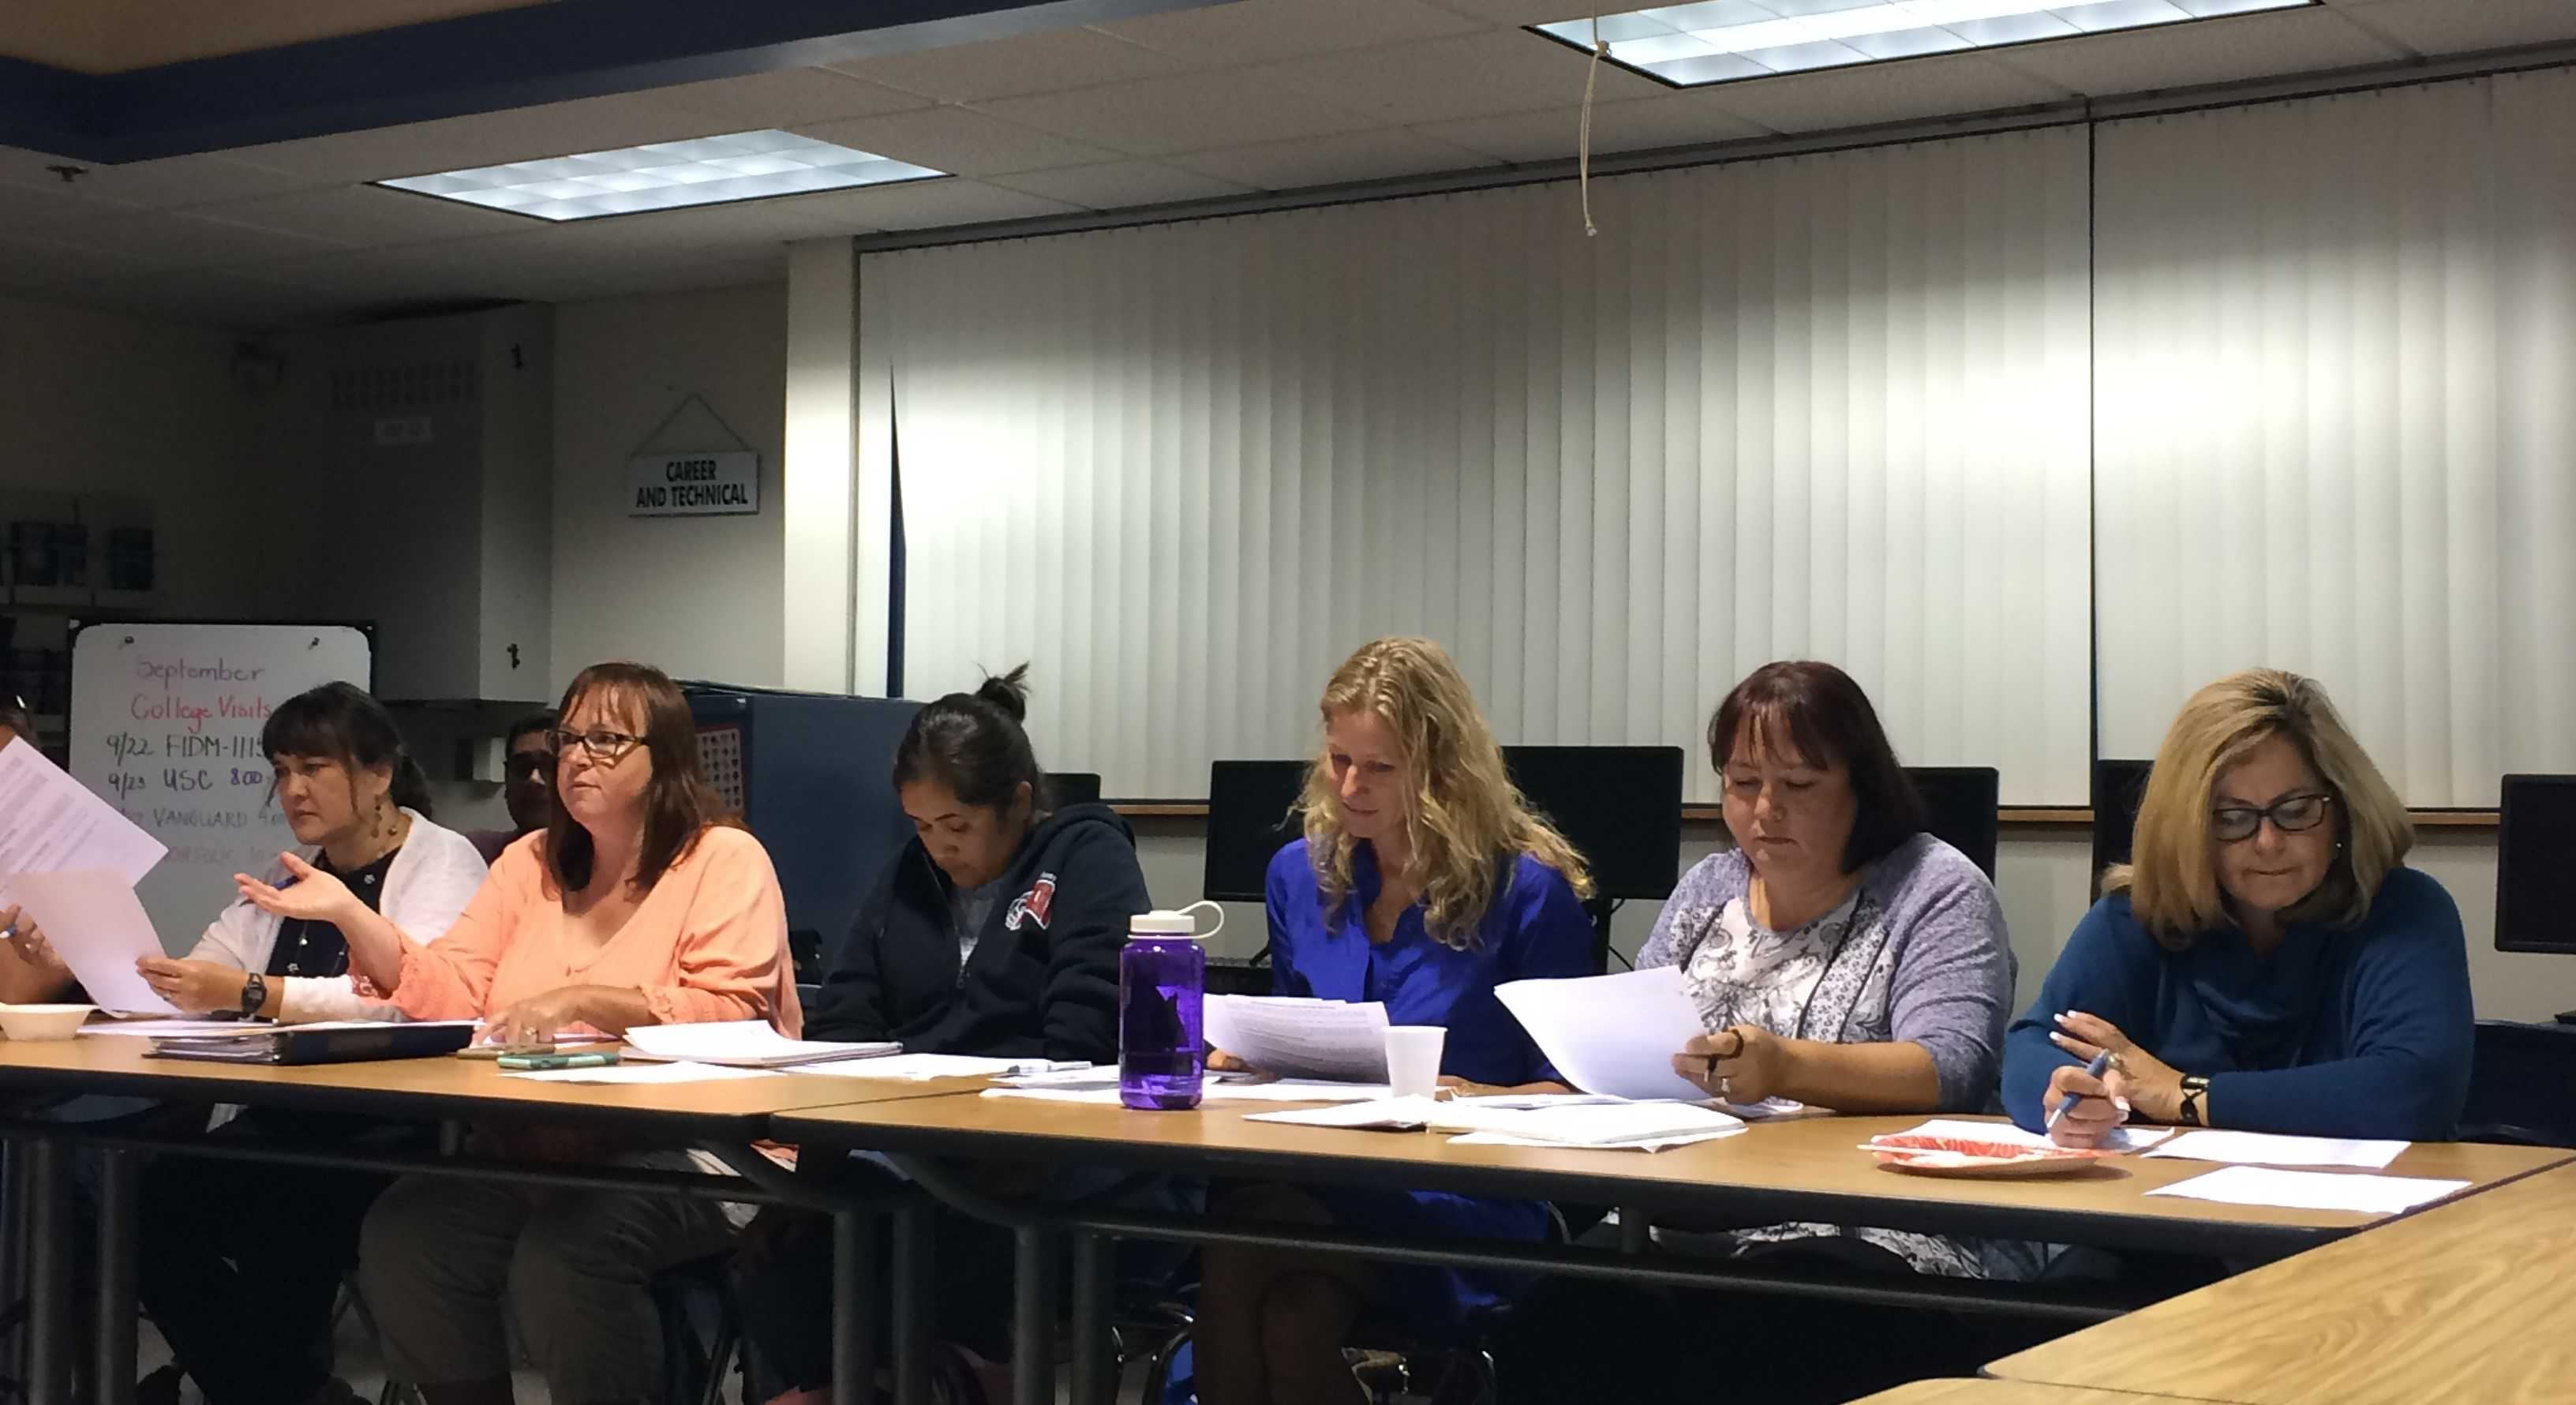 The PTSA Board at the first meeting held on September 13, 2016